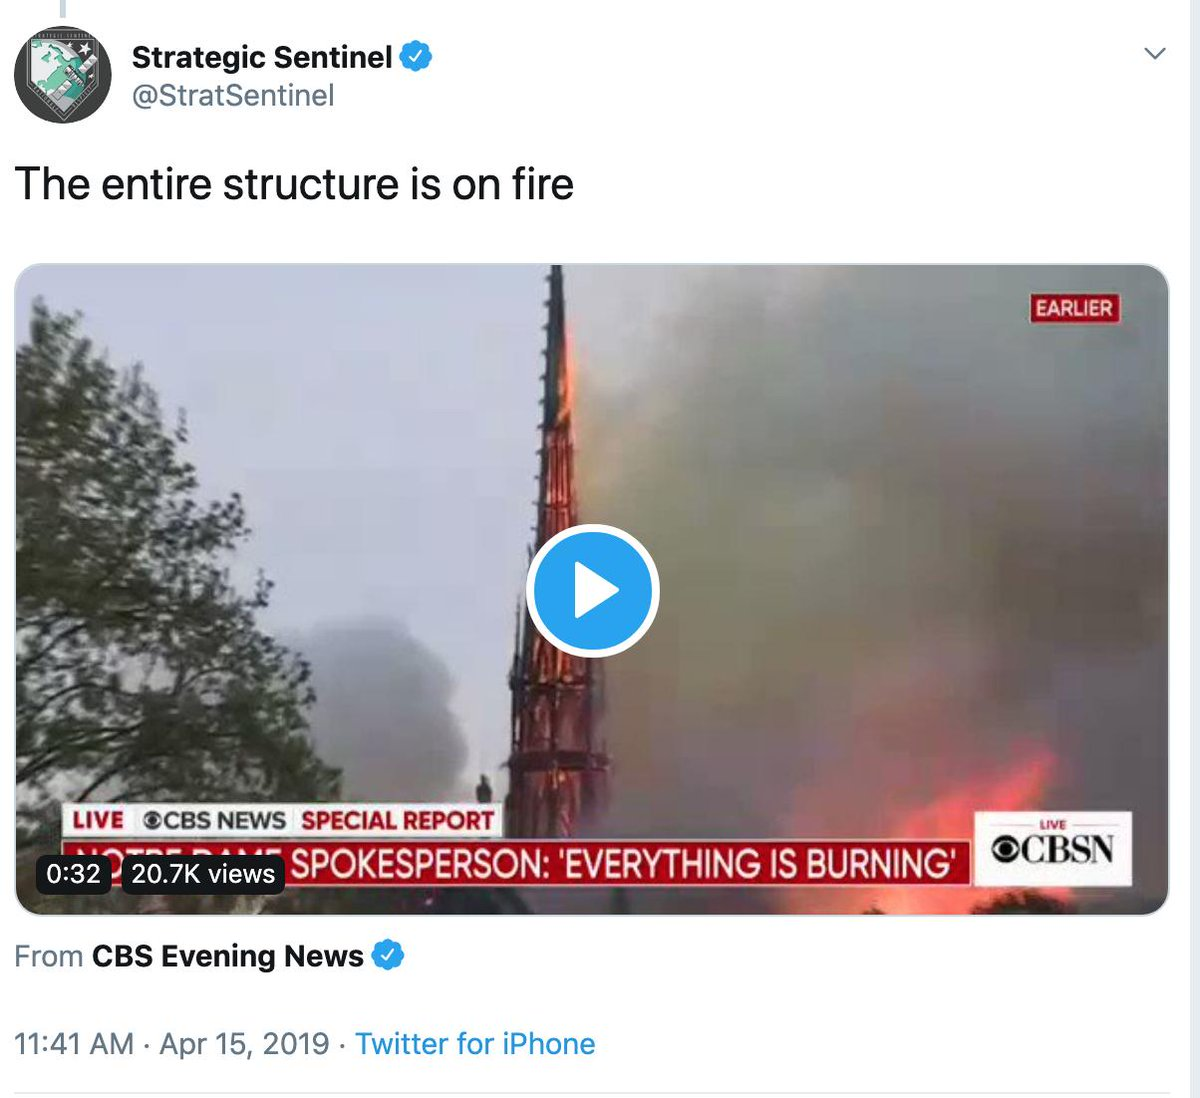 Bizarrely, the specific tweets listed in the warnings Twitter sent out had nothing to do with India or Pakistan. One was a video of the Notre-Dame fire. Two were direct quotes from Secretary of State Mike Pompeo, who was talking about Iran.